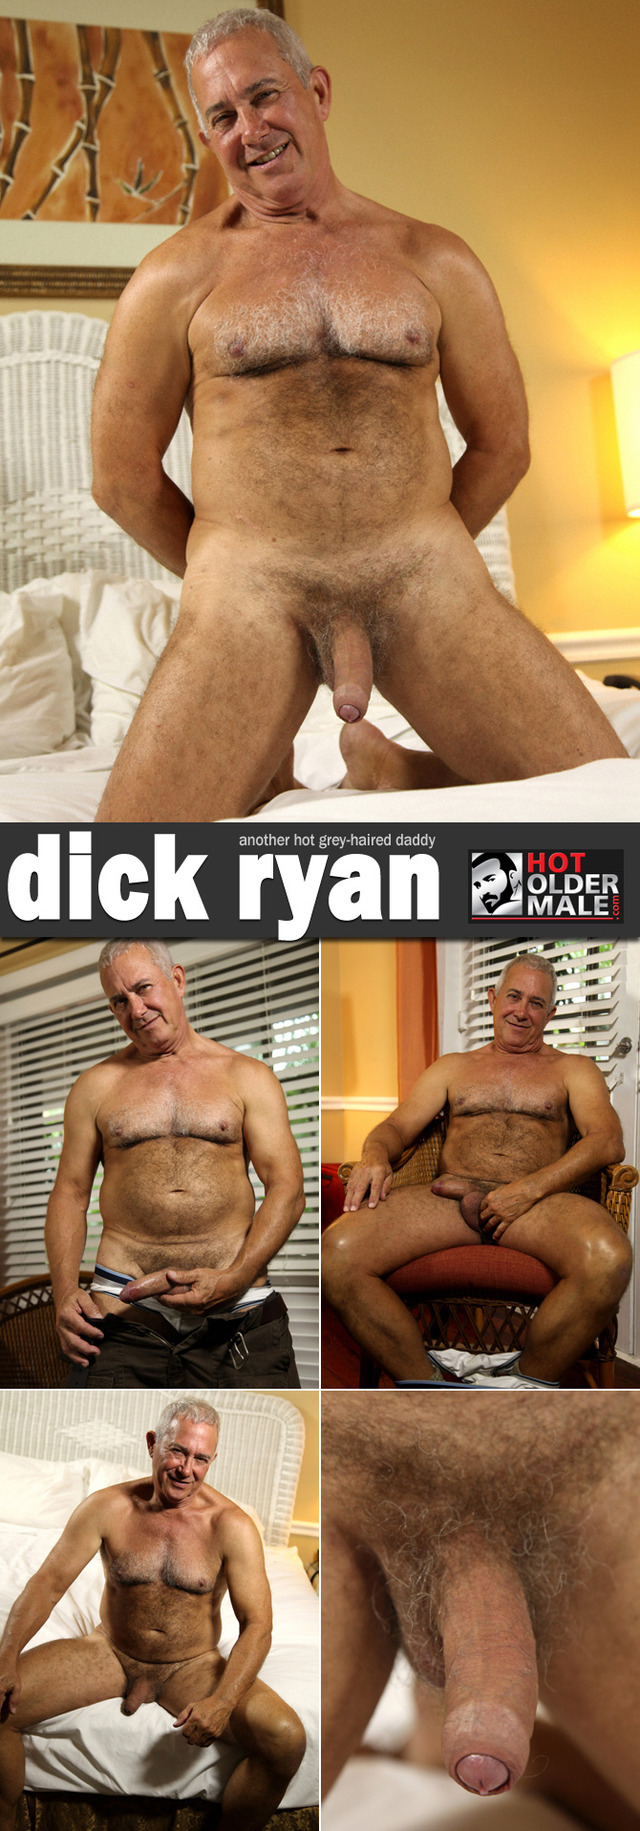 porn older fat older dick cock hot fat male haired ryan grey collages hotoldermale uncut daddys